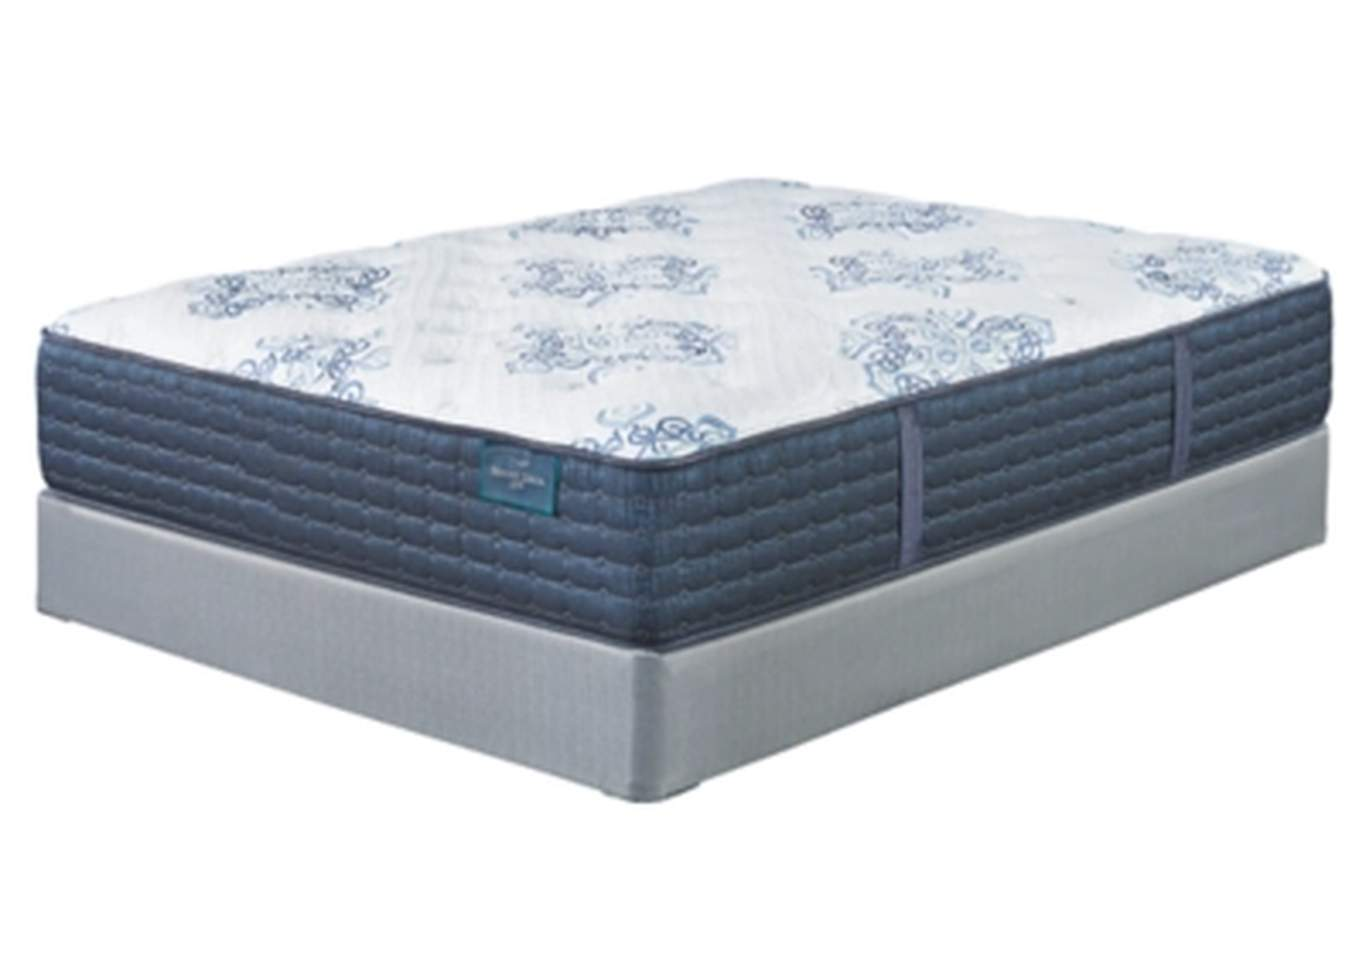 Mt. Dana Firm White Full Mattress,Sierra Sleep by Ashley